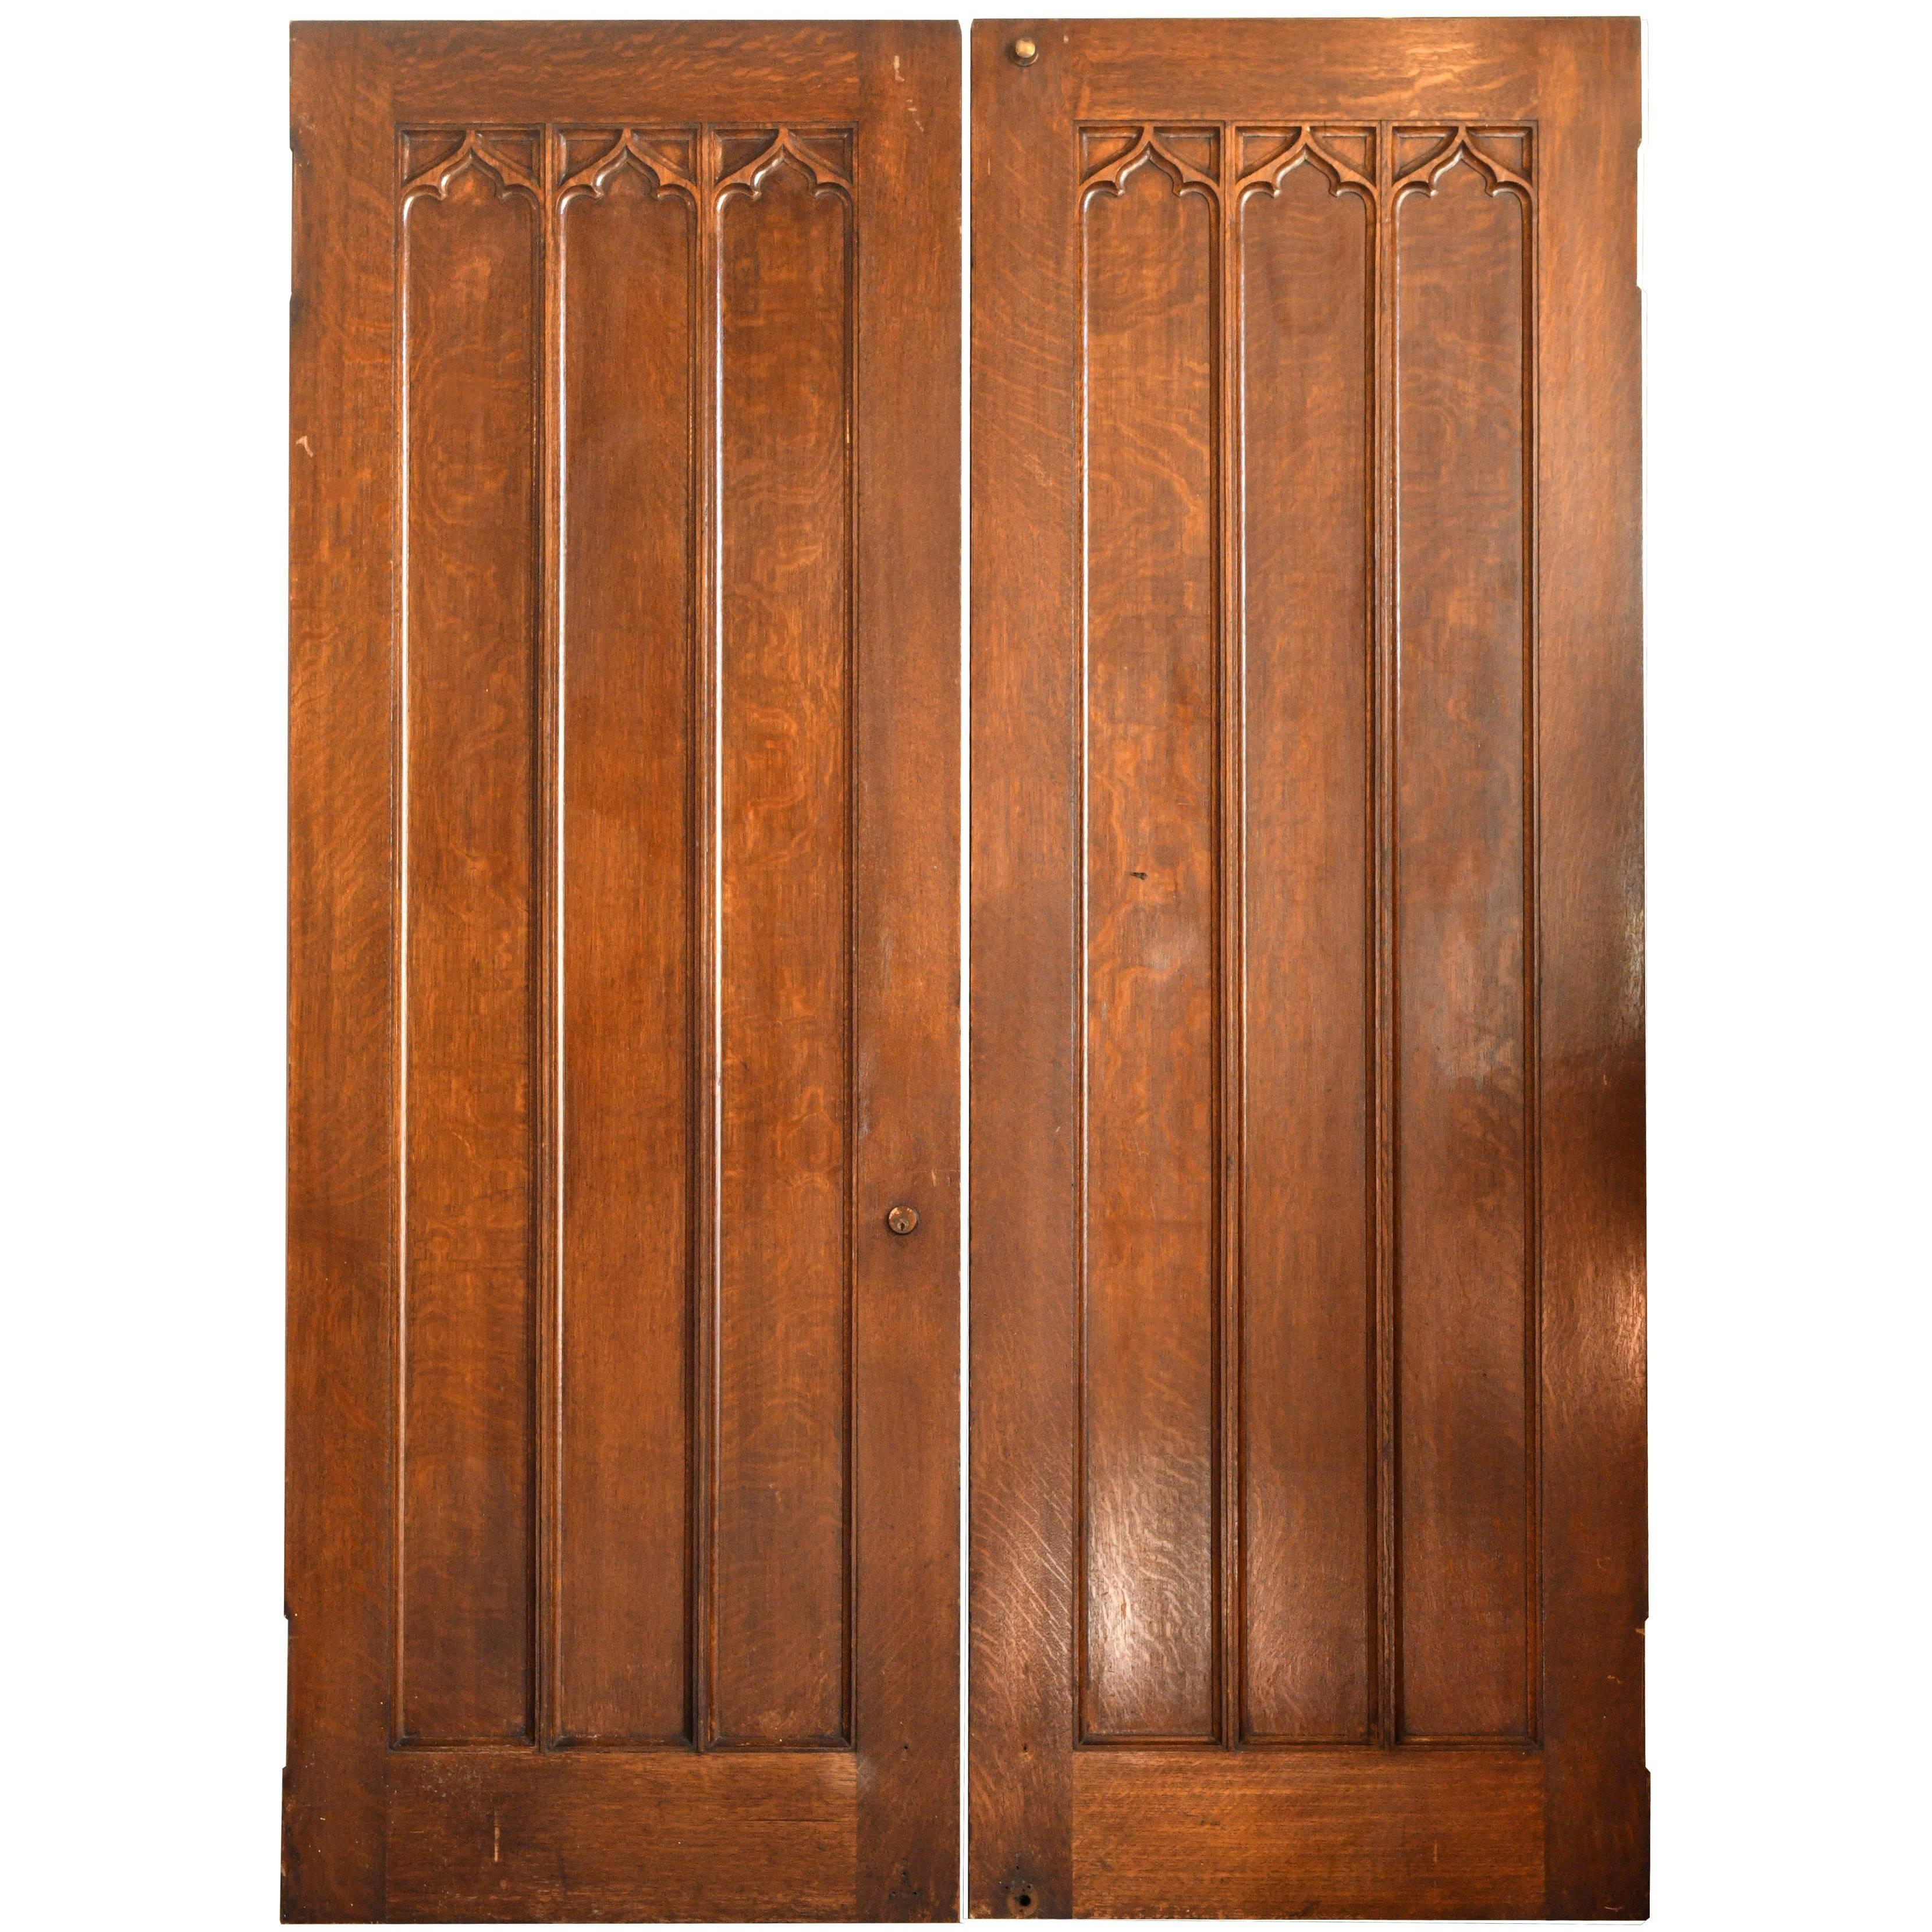 Tall Oak Gothic Double Swinging Doors  sc 1 st  1stDibs & Medieval Doors and Gates - 27 For Sale at 1stdibs